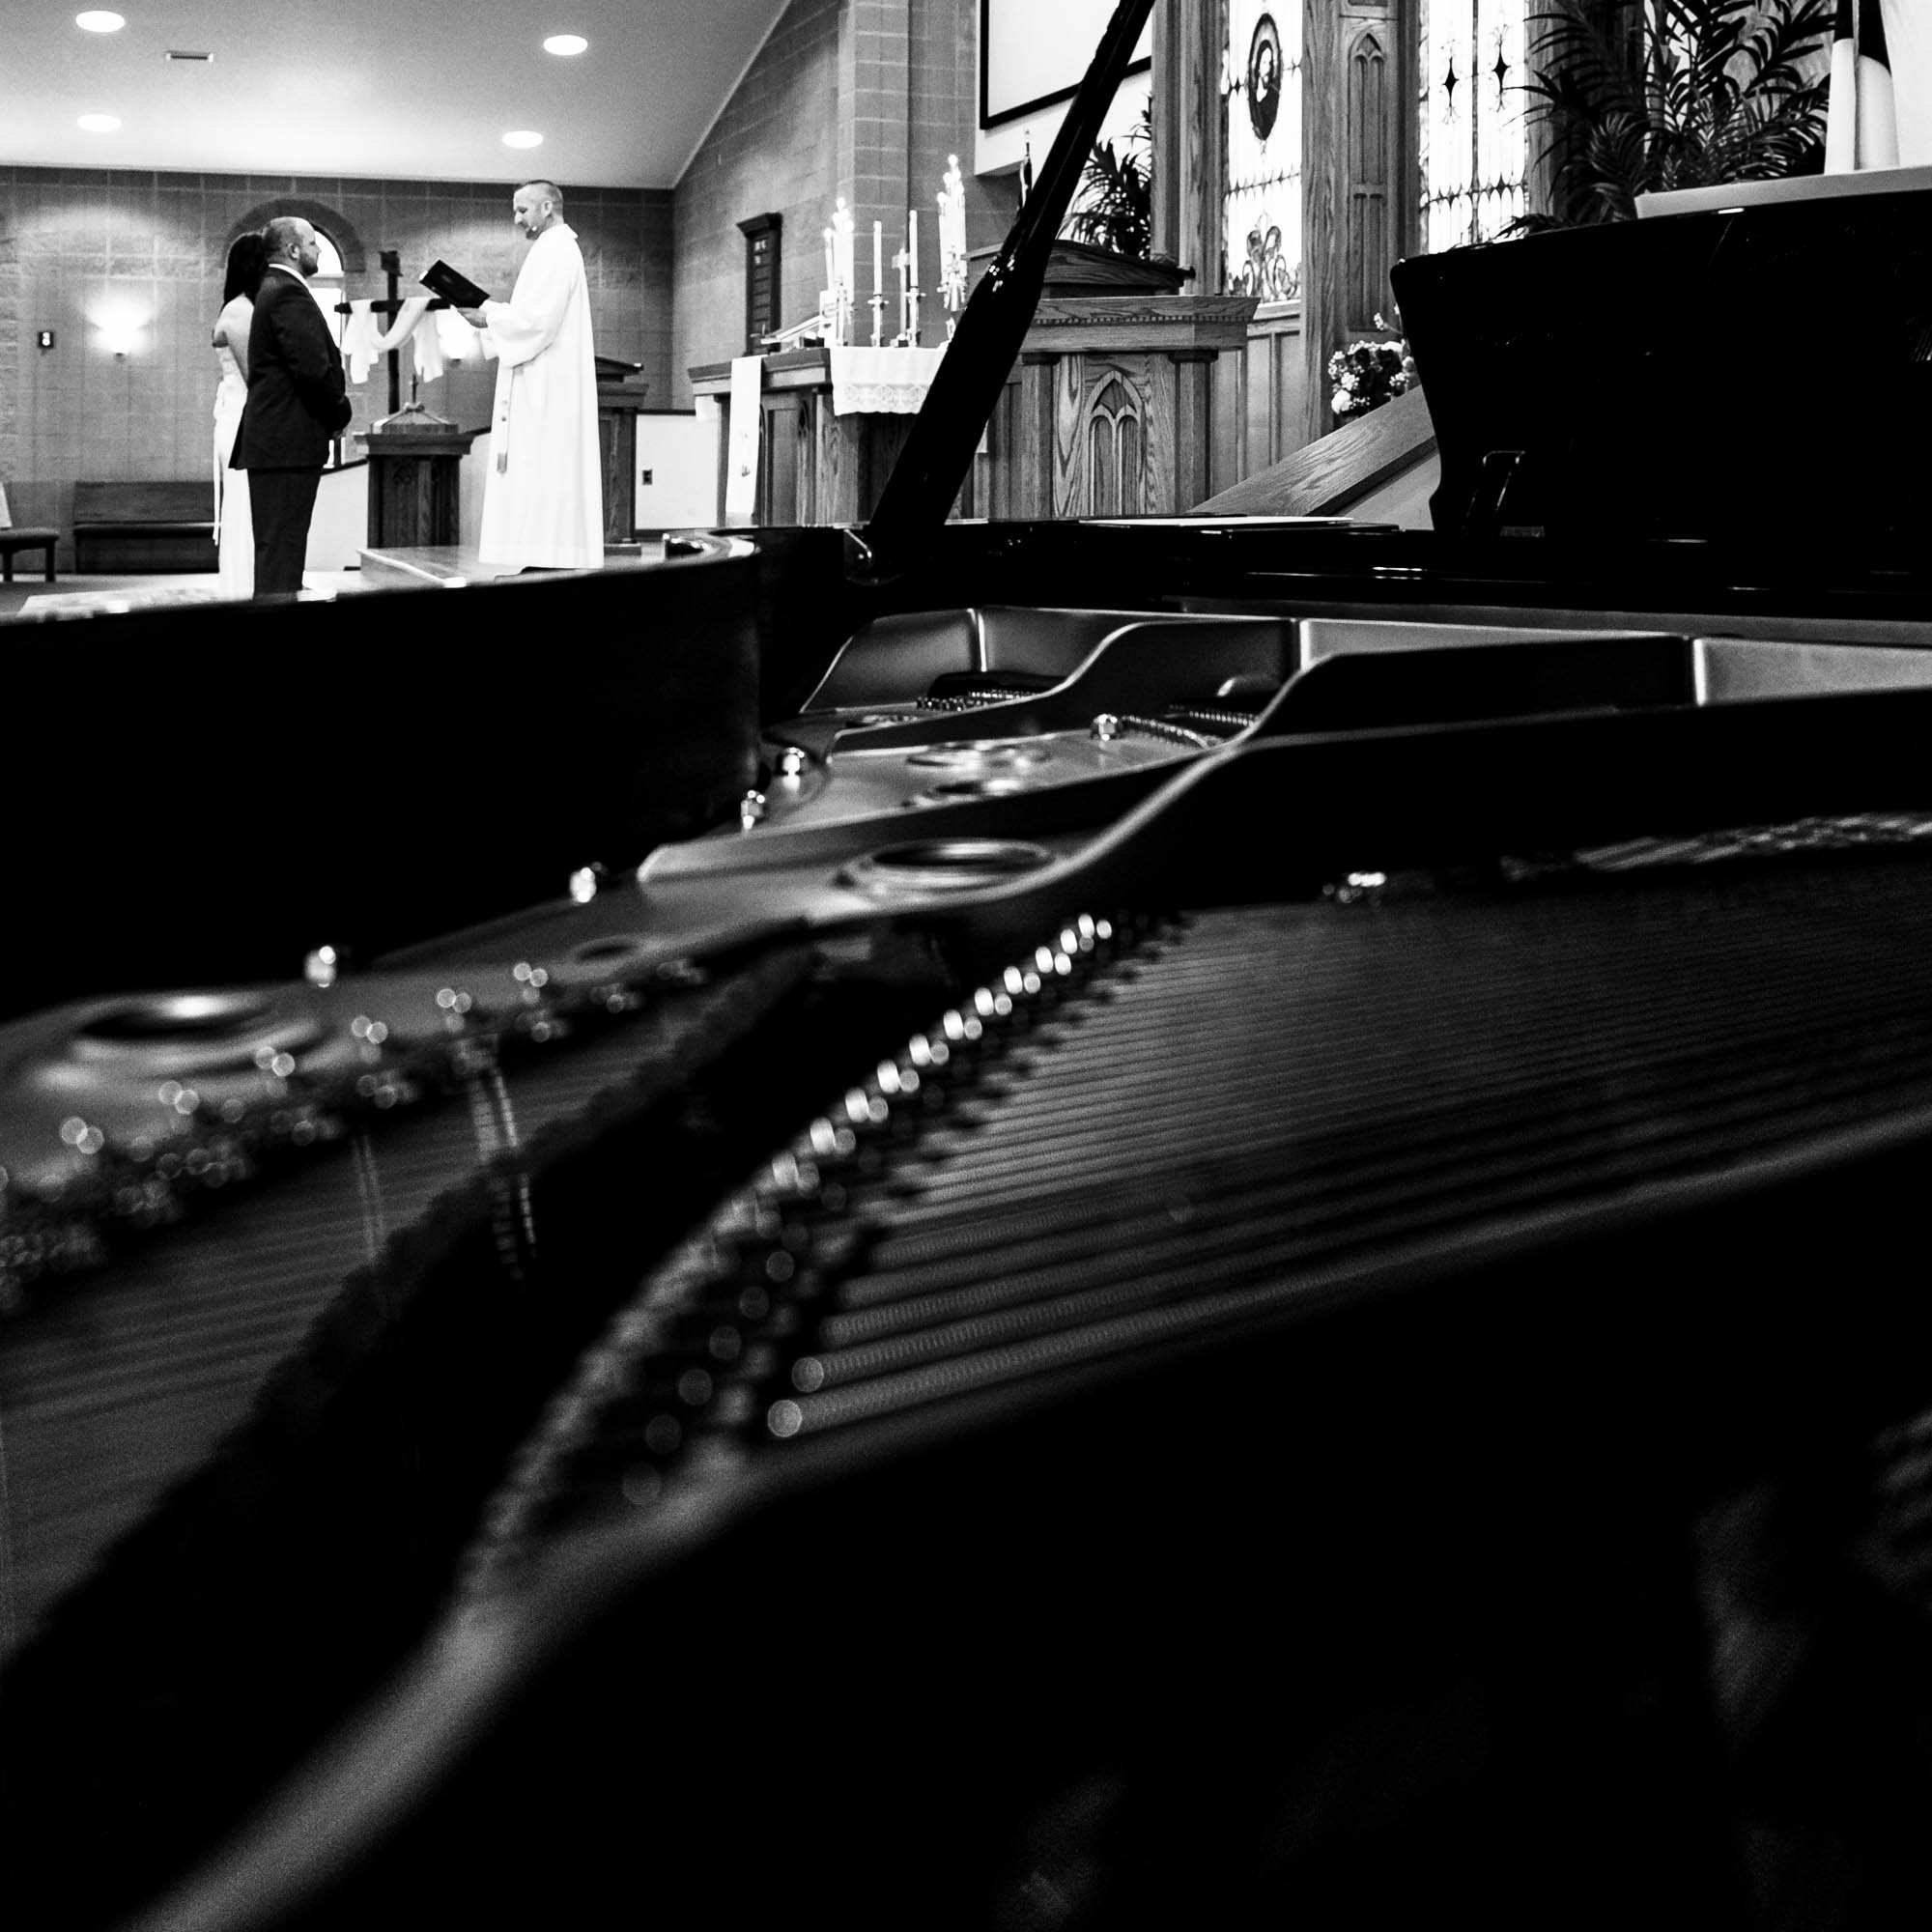 Piano t wedding by La Crosse, WI photographer Jeff Wiswell of J.L. Wiswell Photography